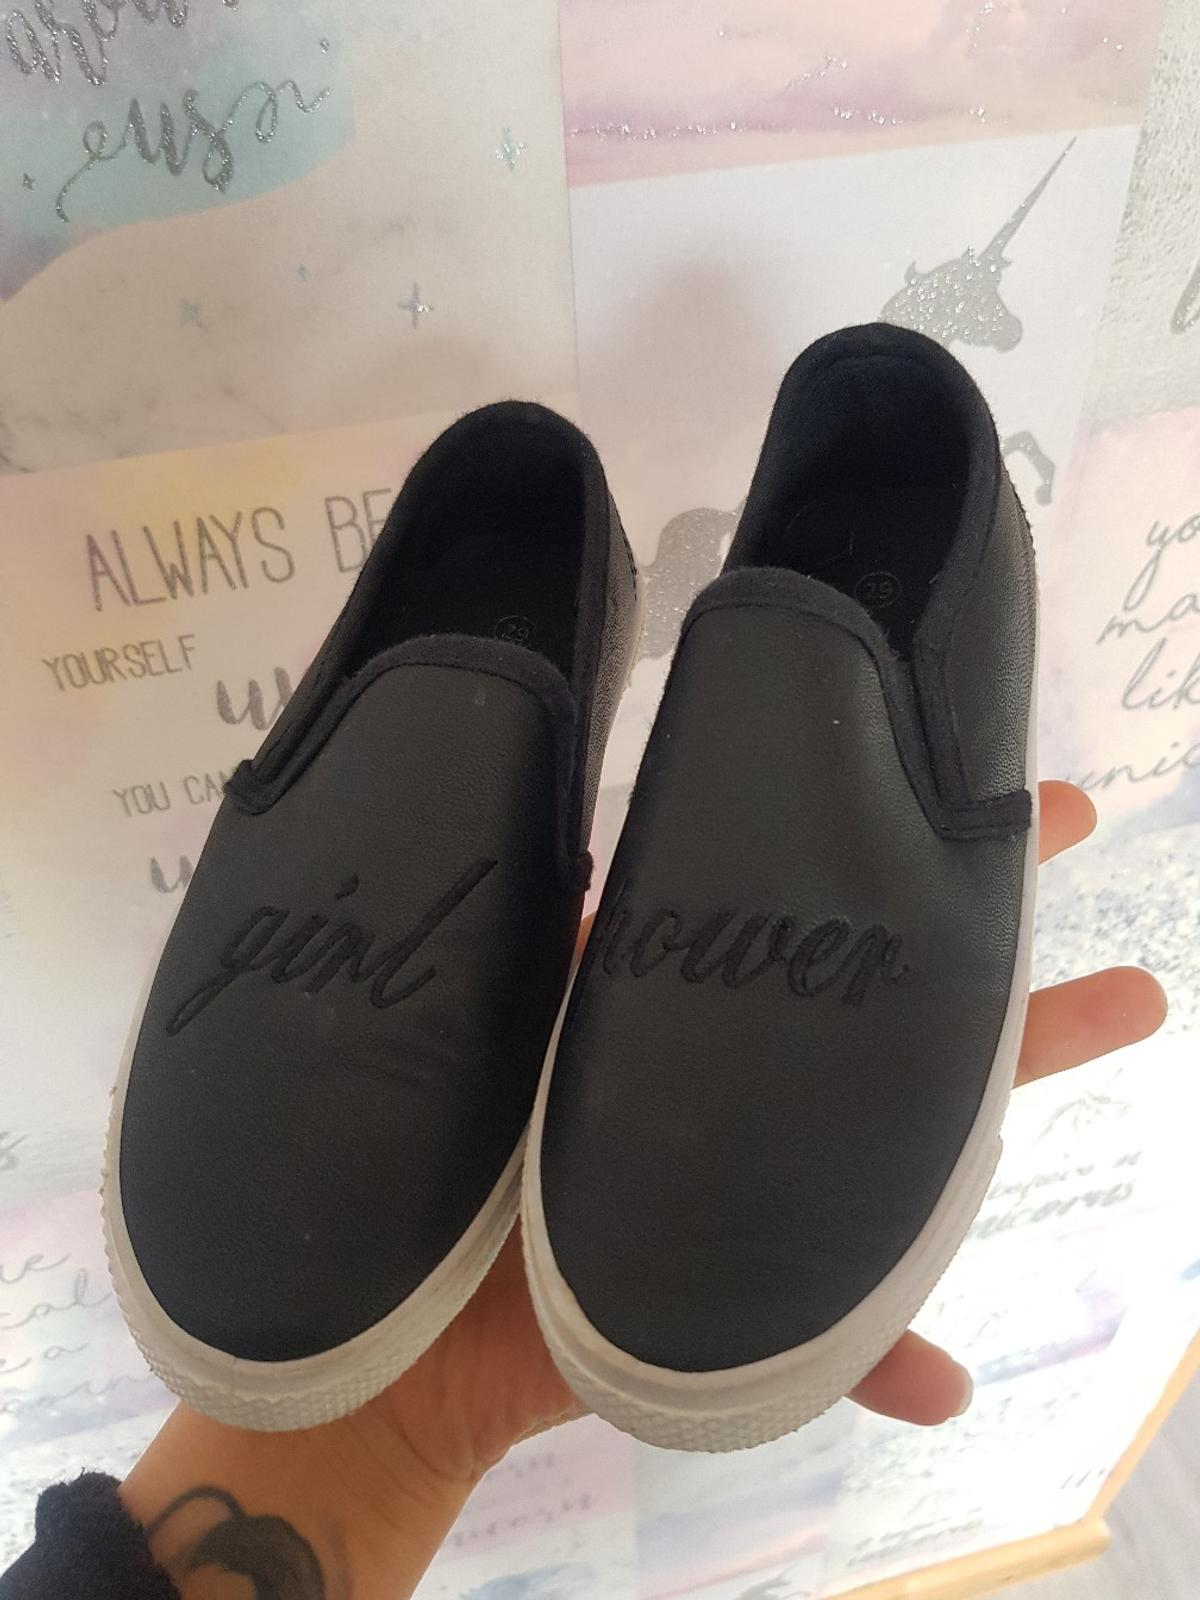 size 29 / 11